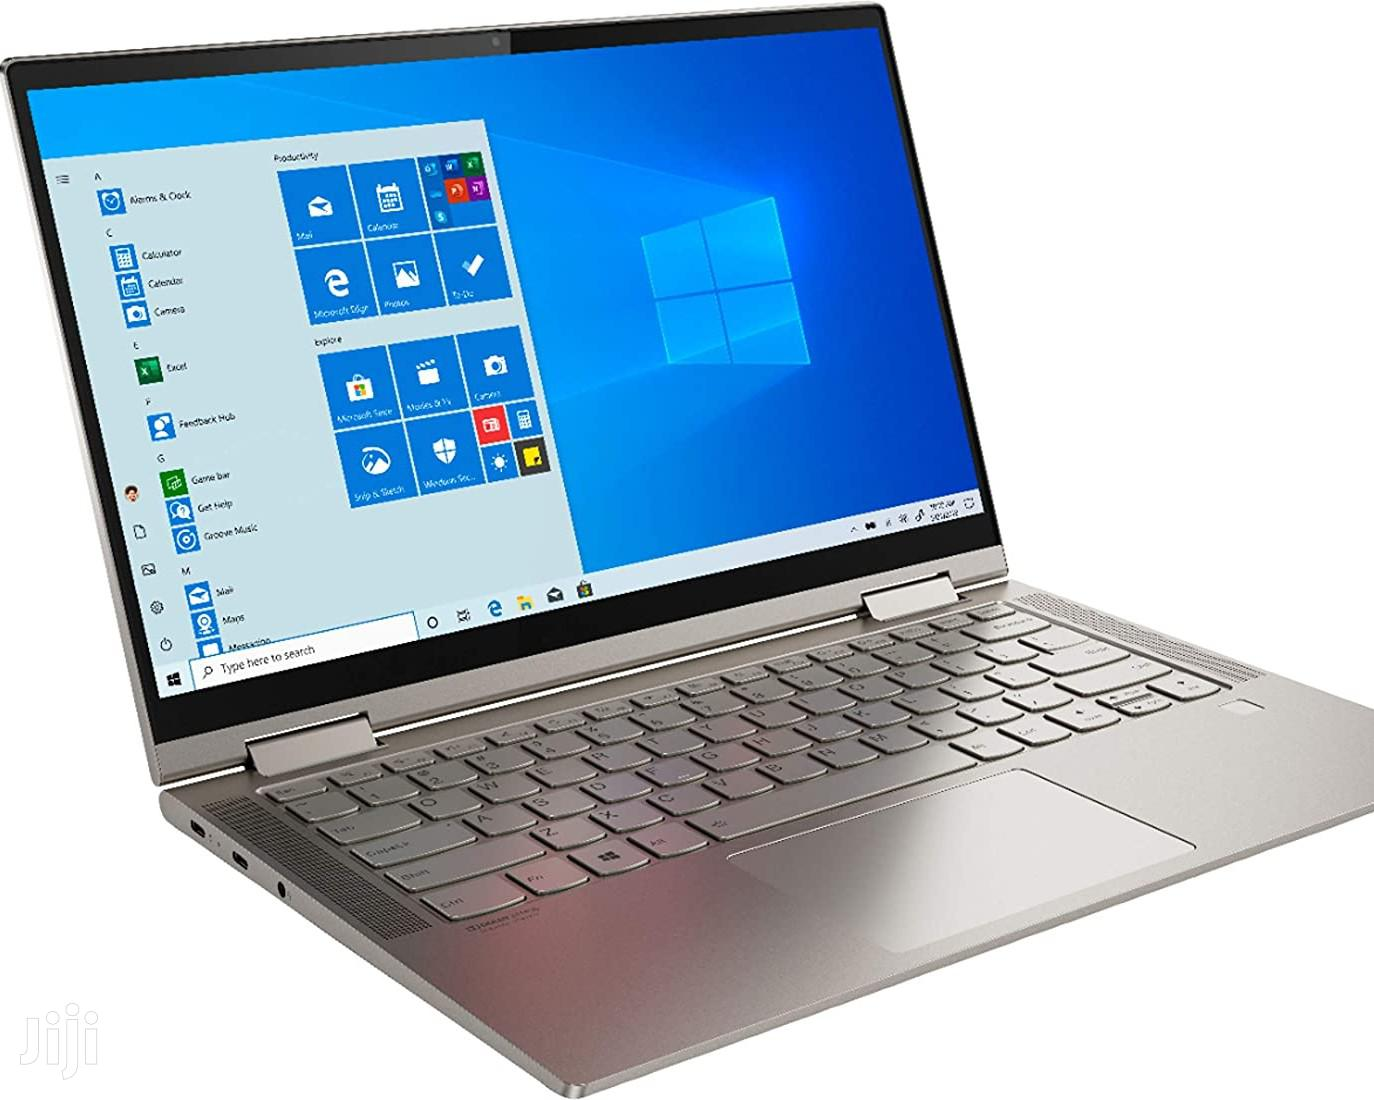 New Laptop Lenovo 8GB Intel Core I5 SSD 256GB | Laptops & Computers for sale in Osu, Greater Accra, Ghana